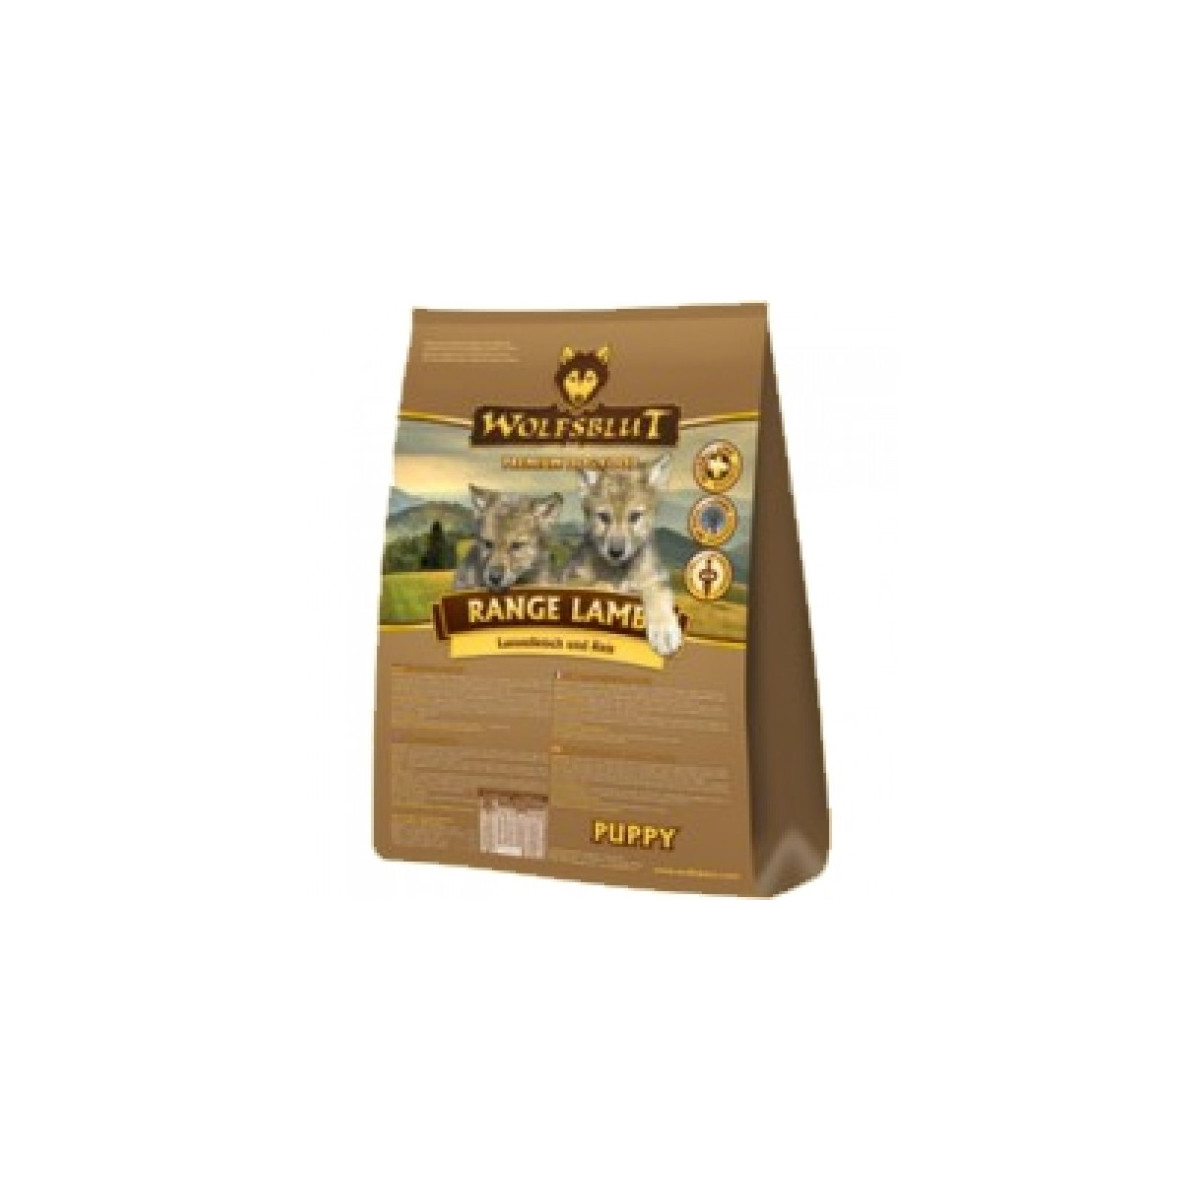 wolfsblut range lamb puppy lamm reis 15 kg 57 60 hundebox. Black Bedroom Furniture Sets. Home Design Ideas